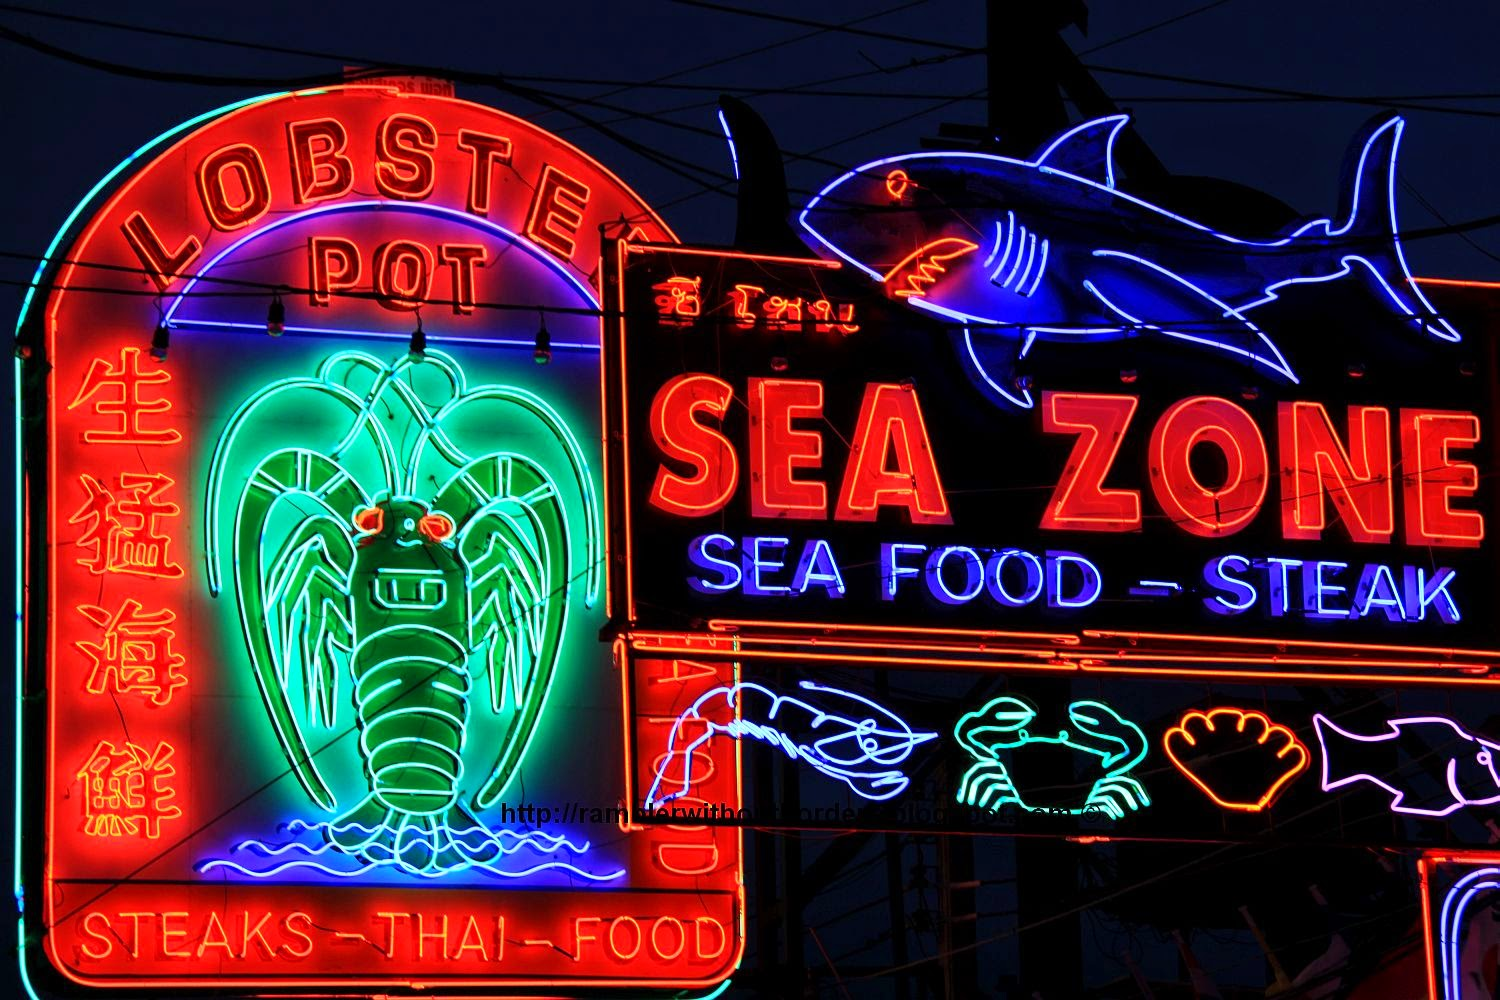 Restaurant neon lights at Walking Street, Pattaya, Thailand